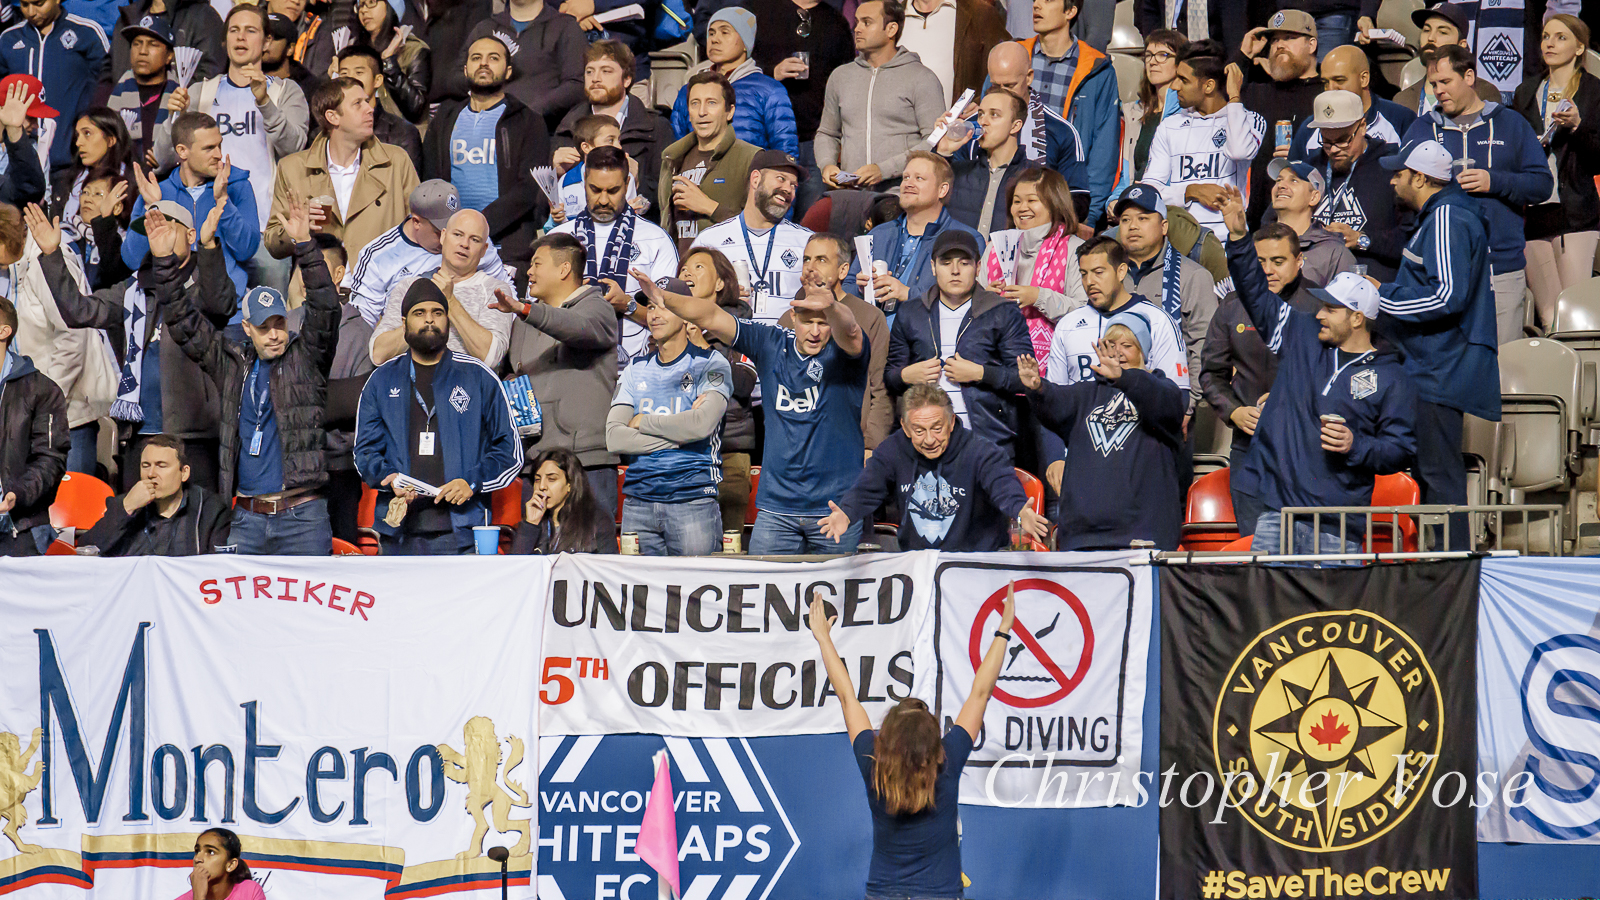 2017-10-25 Vancouver Whitecaps FC Supporters 2.jpg